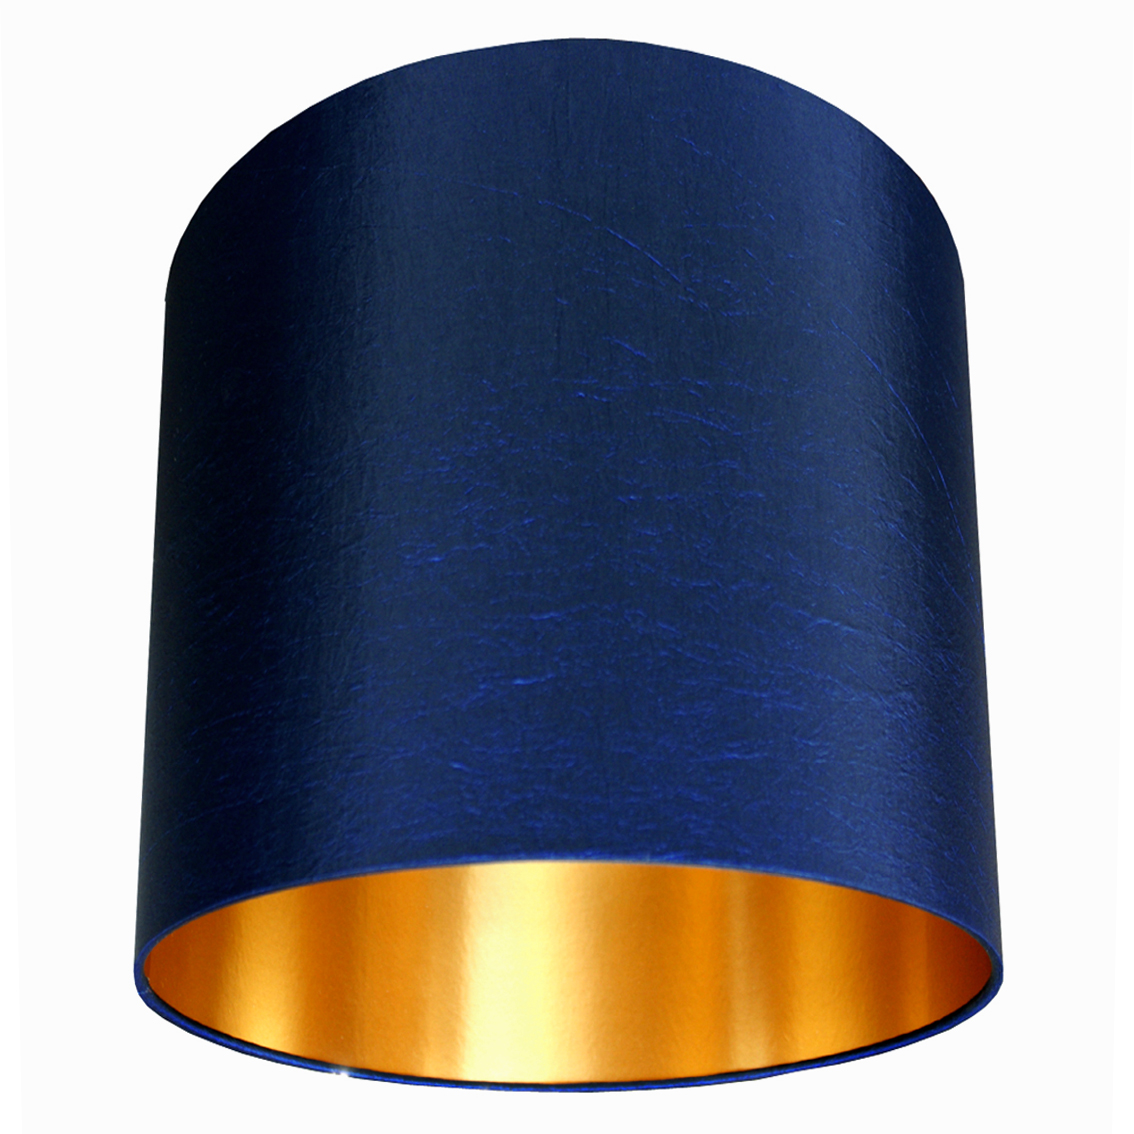 Midnight Blue Handmade Lampshade With Gold Lining Love